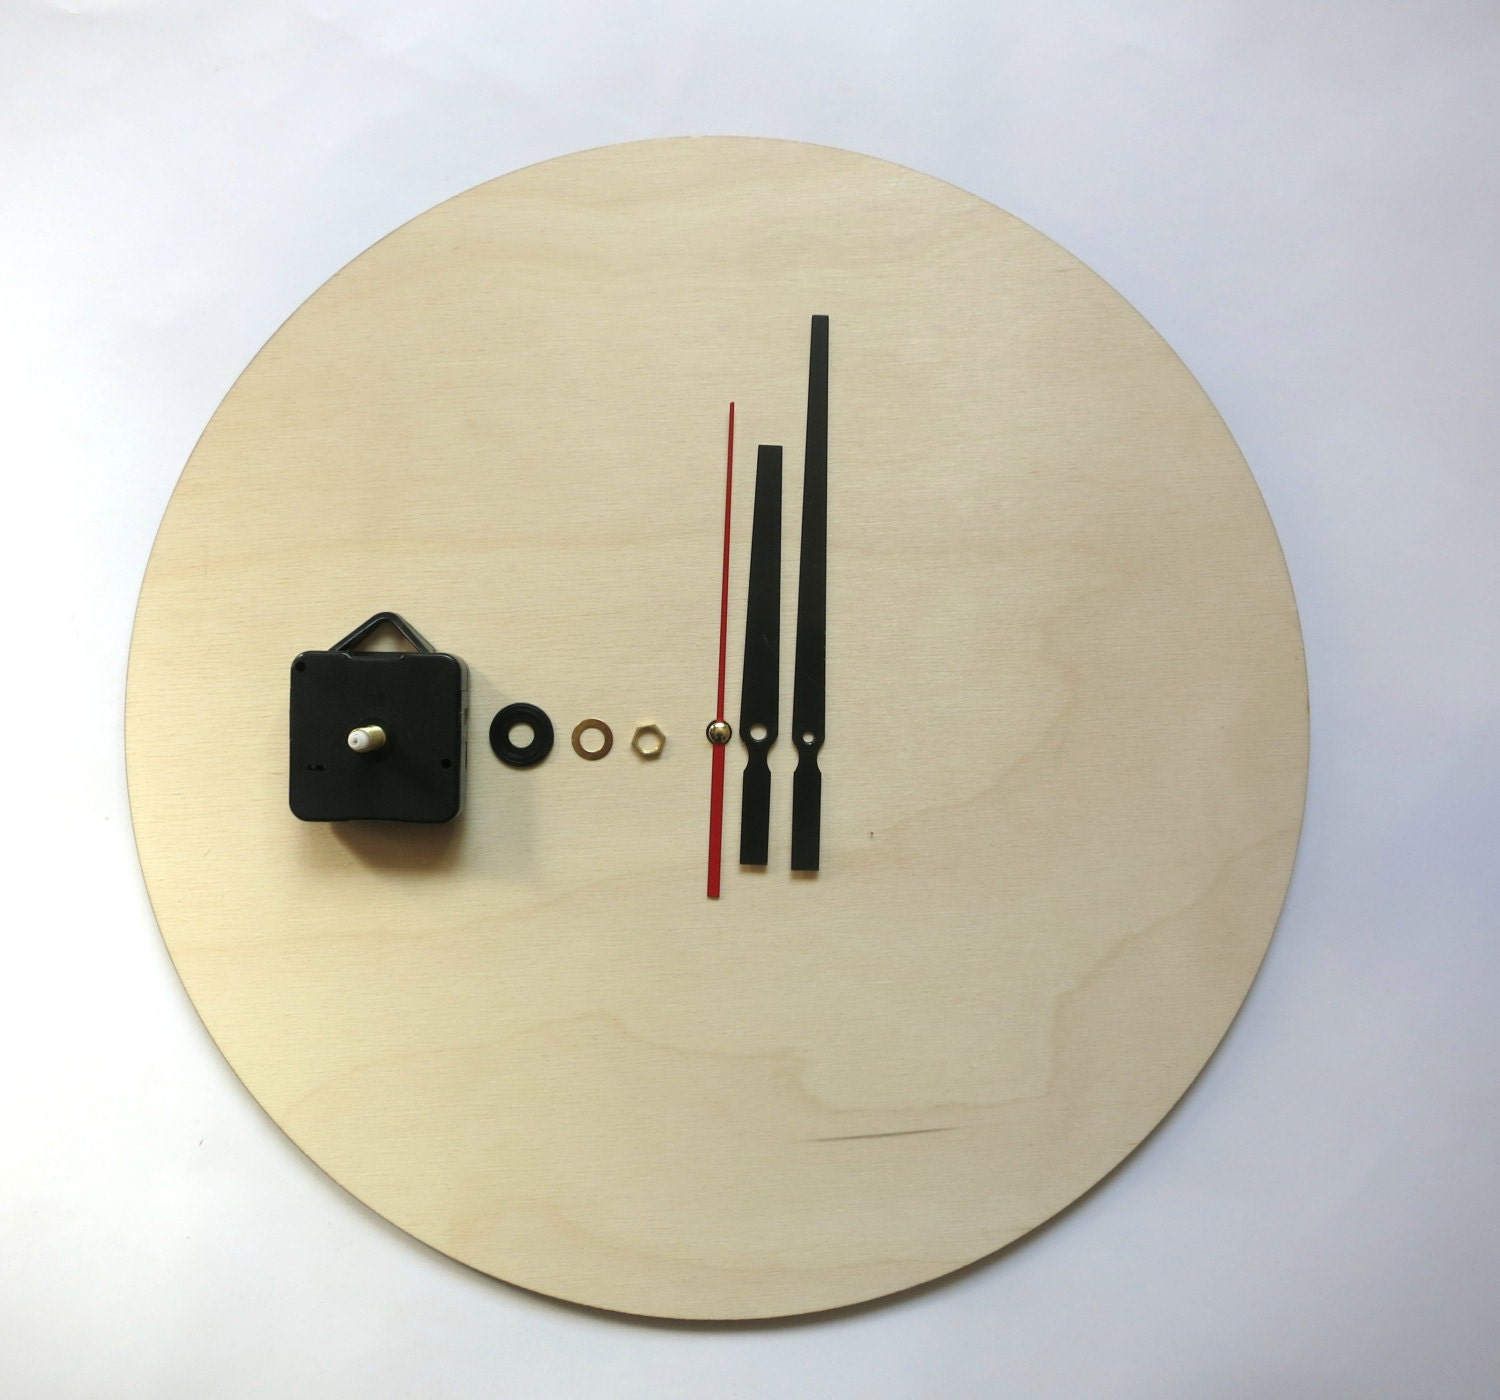 Clock kit DIY Wall clock kit 16 40cm diy clock wood